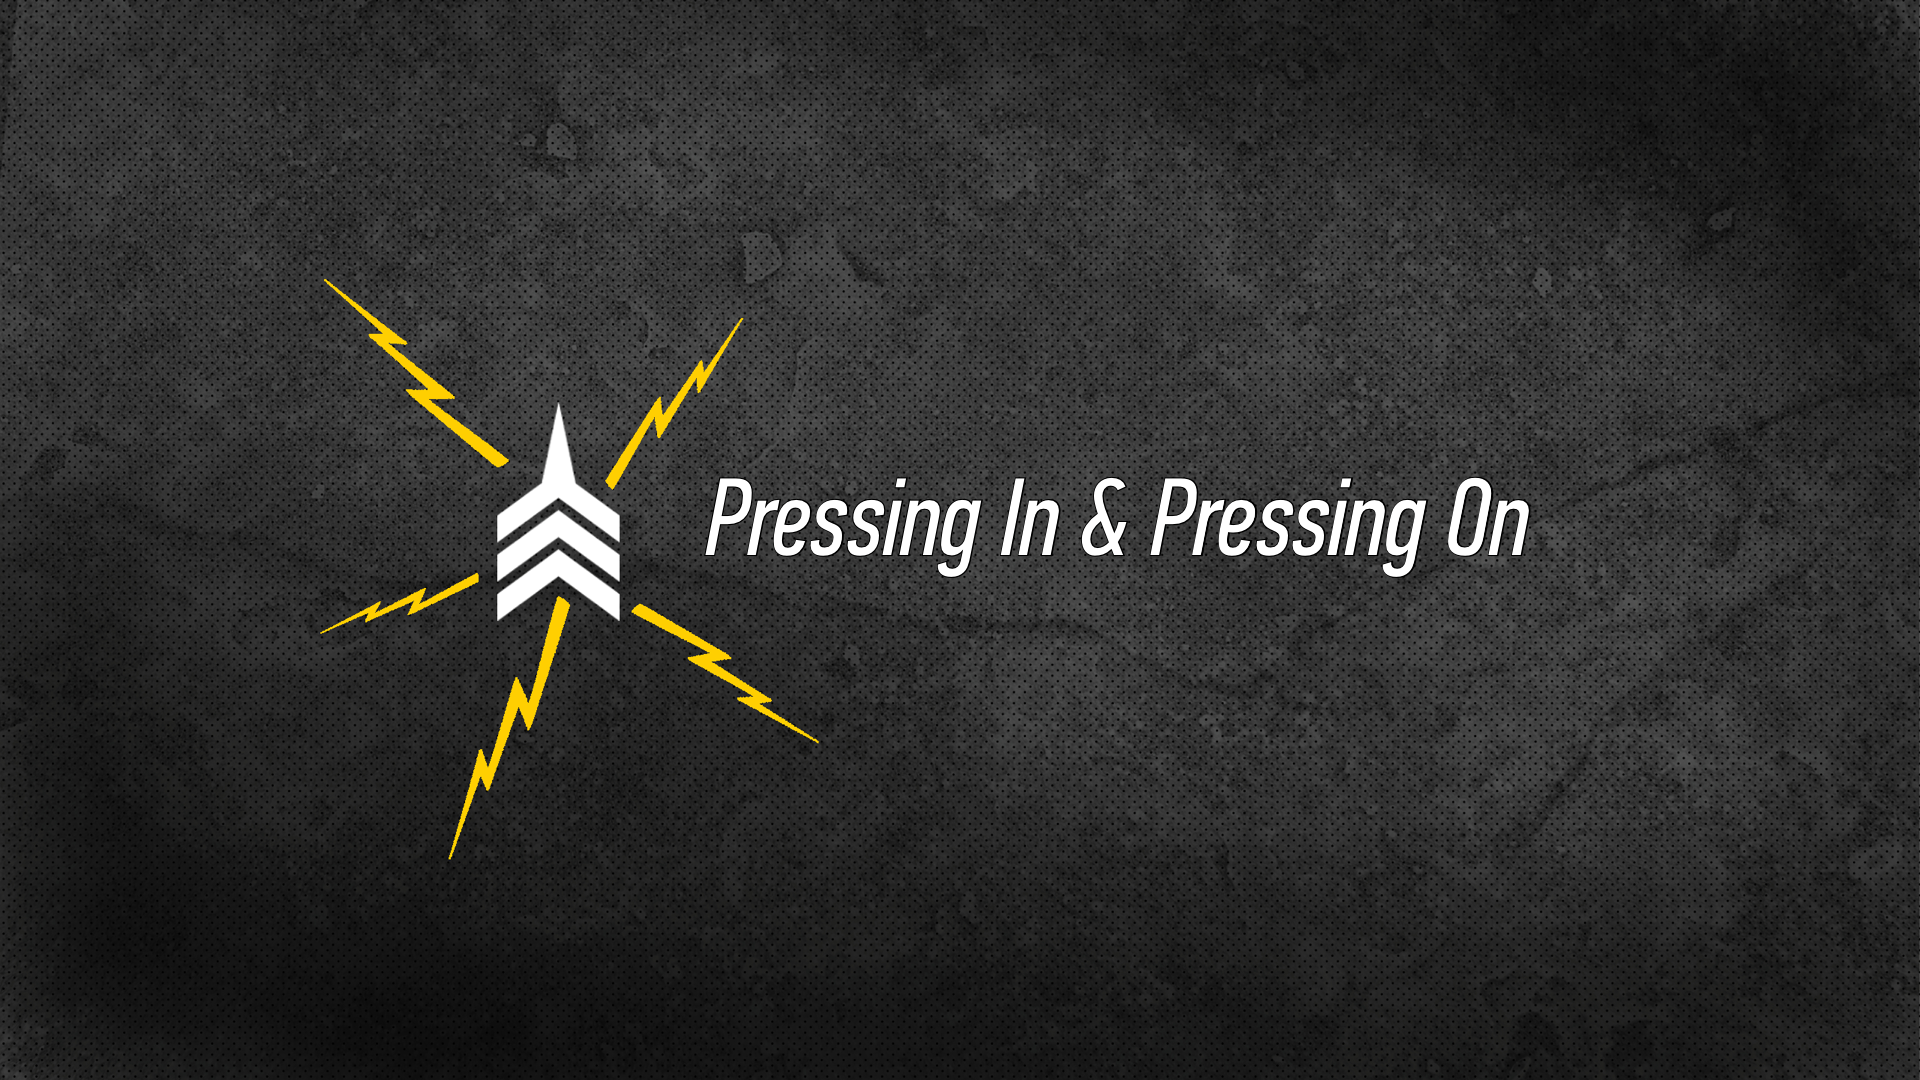 20160911 Pressing In & Pressing On.png